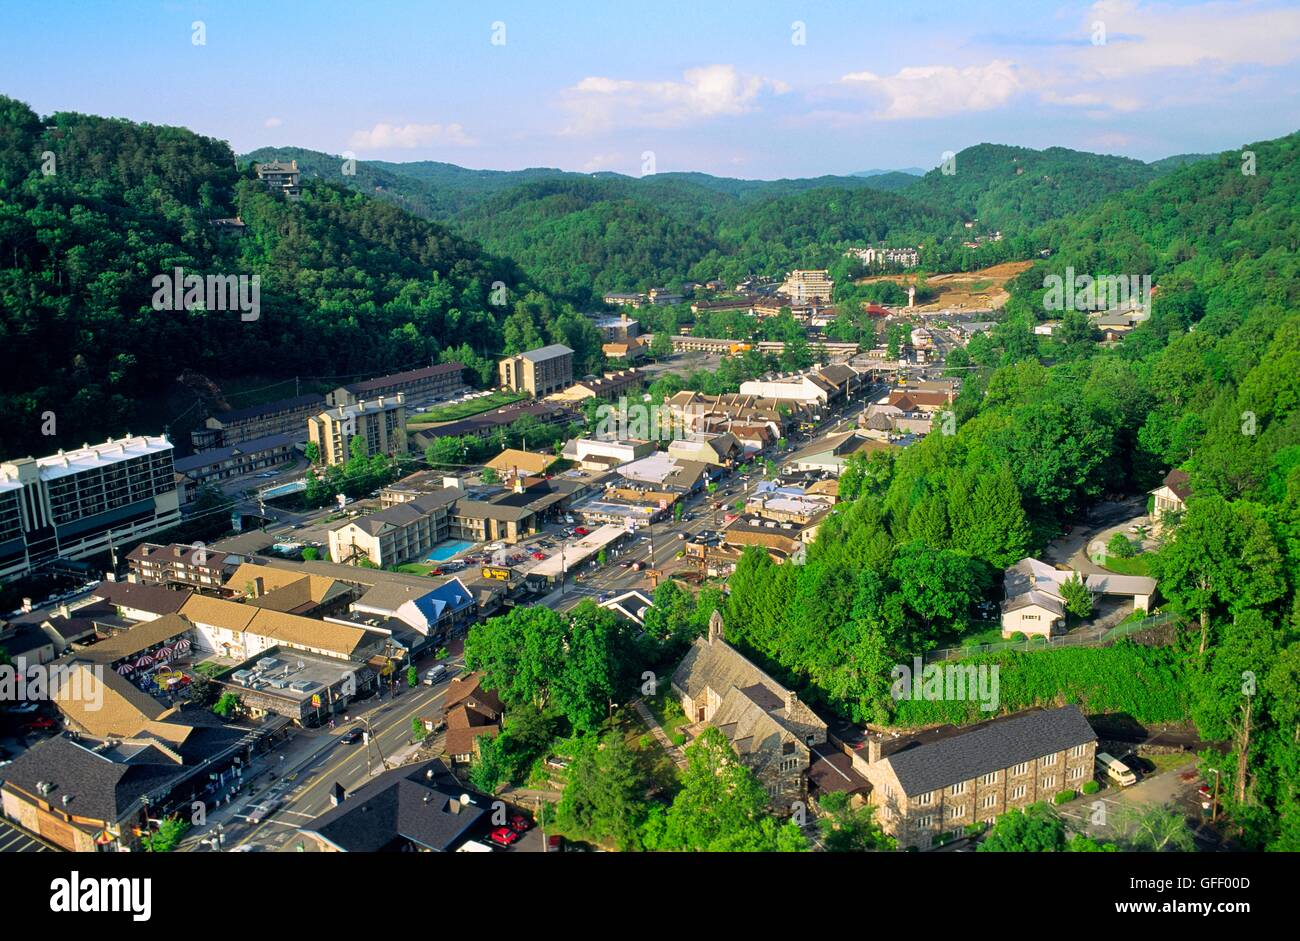 the great smoky mountains resort town of gatlinburg. tennessee, usa